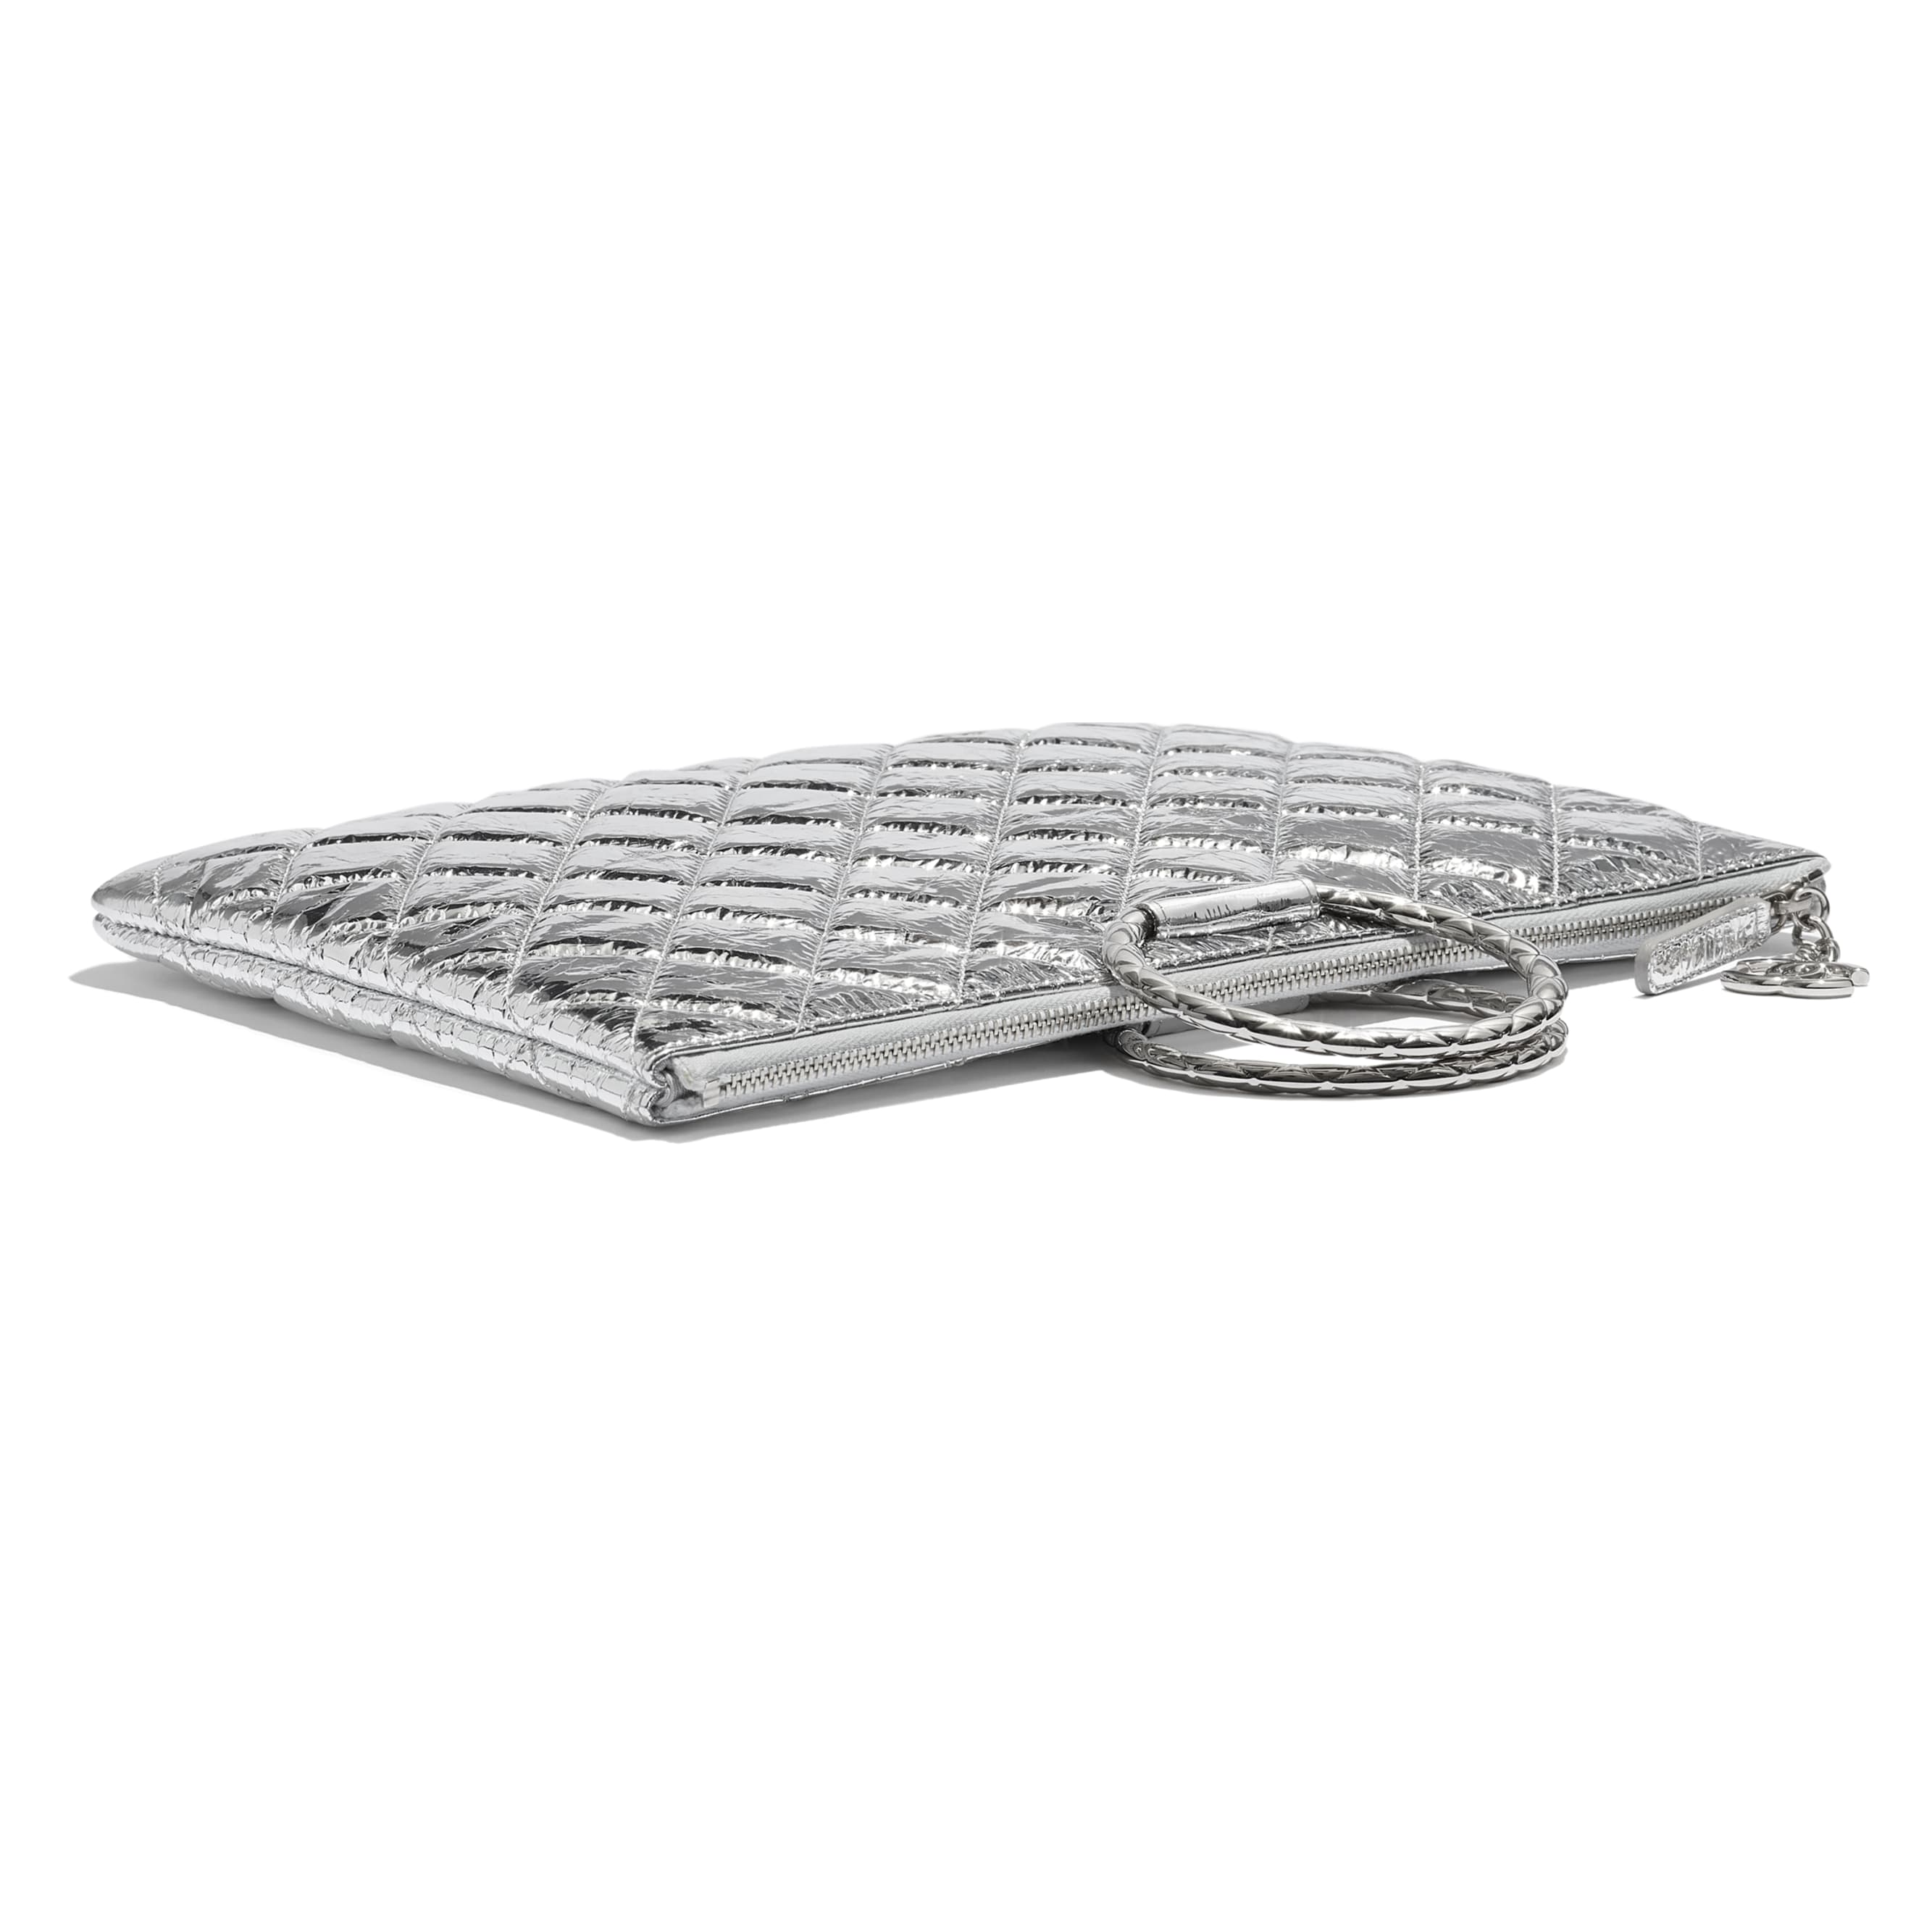 Pouch - Silver - Metallic Crumpled Goatskin & Silver-Tone Metal - CHANEL - Extra view - see standard sized version